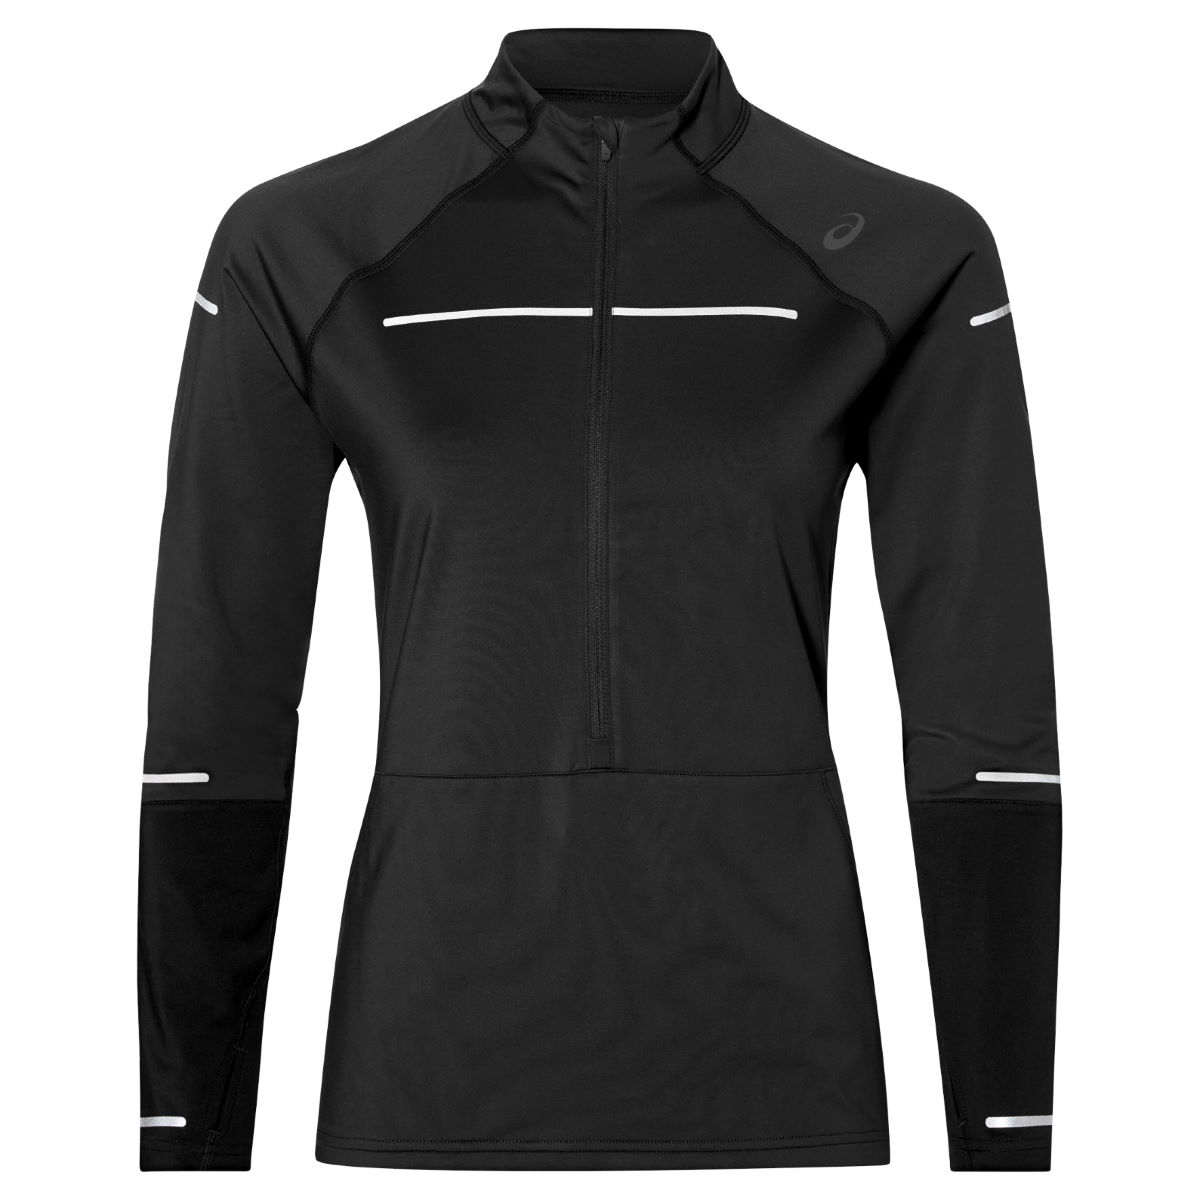 Asics Women's Lite-Show Winter LS 1/2 Zip Top - Camisetas de manga larga para running